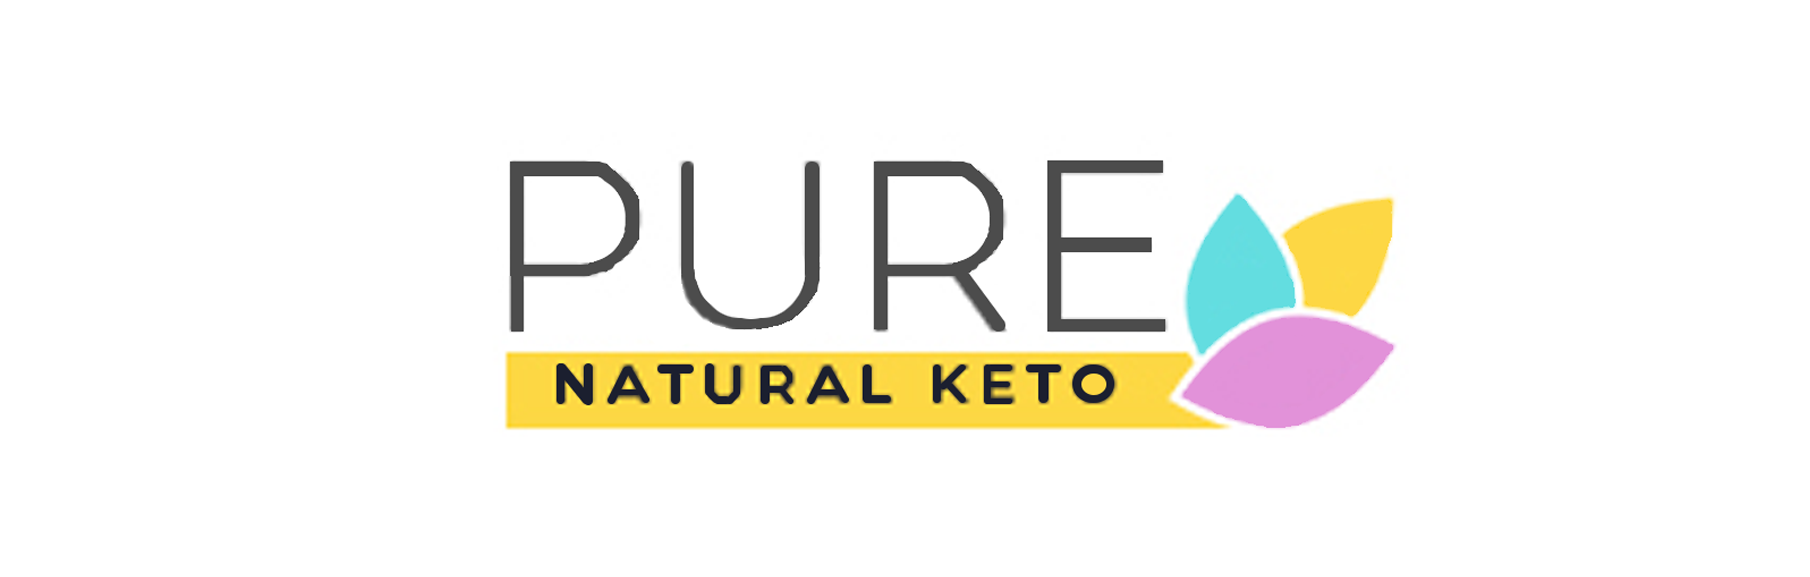 Pure Natural Keto is the perfect use case for how to use some of Mobiniti's best features.